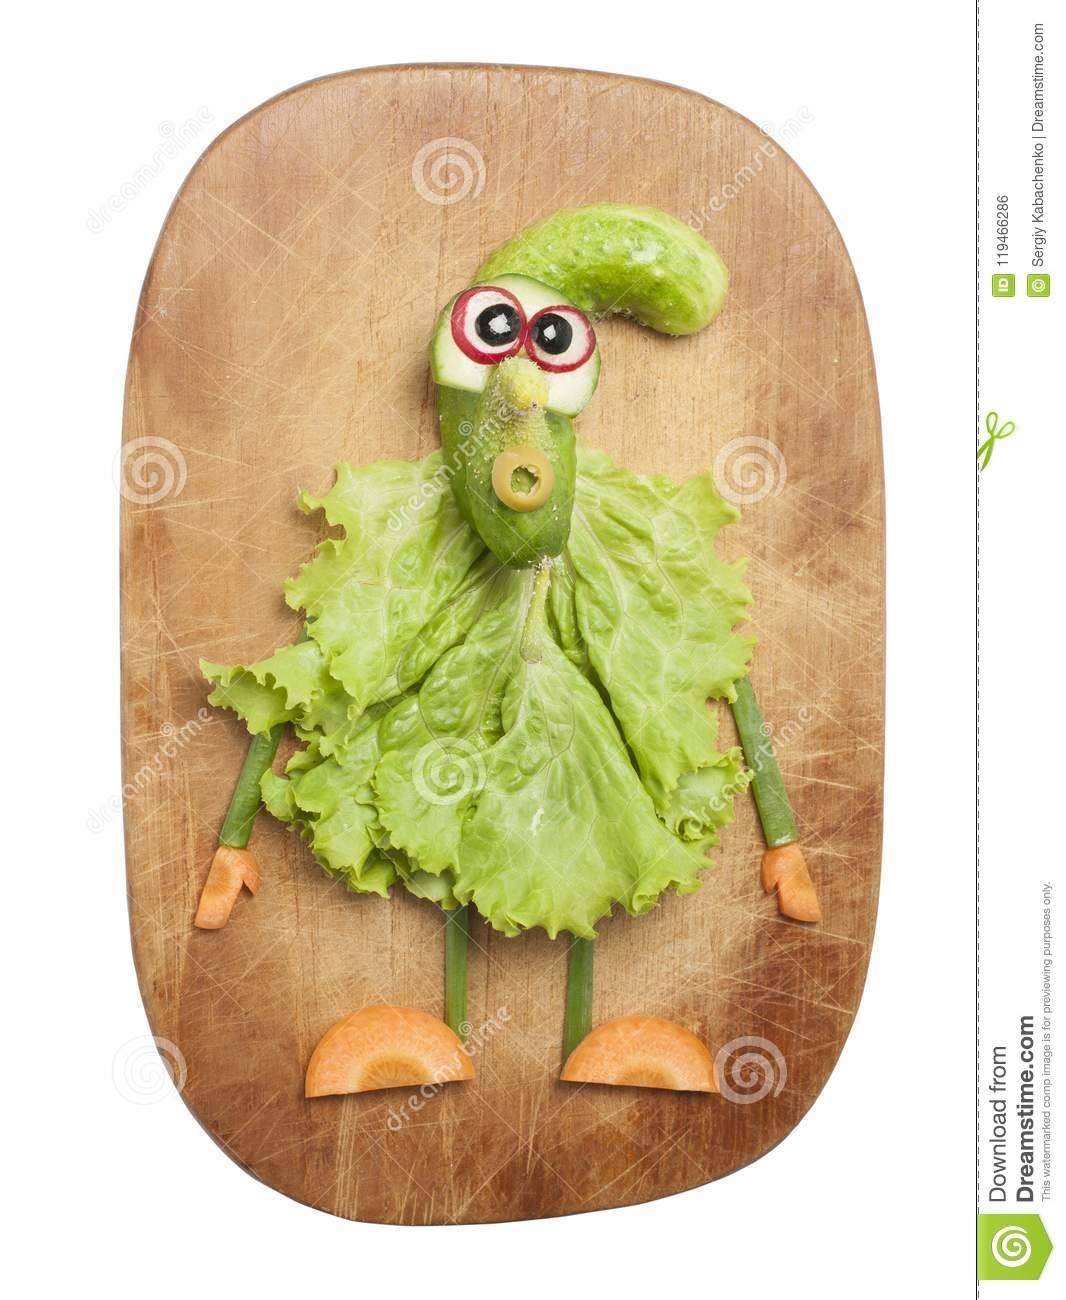 Funny Vegetable Gnome On Cutting Board Stock Photo Image